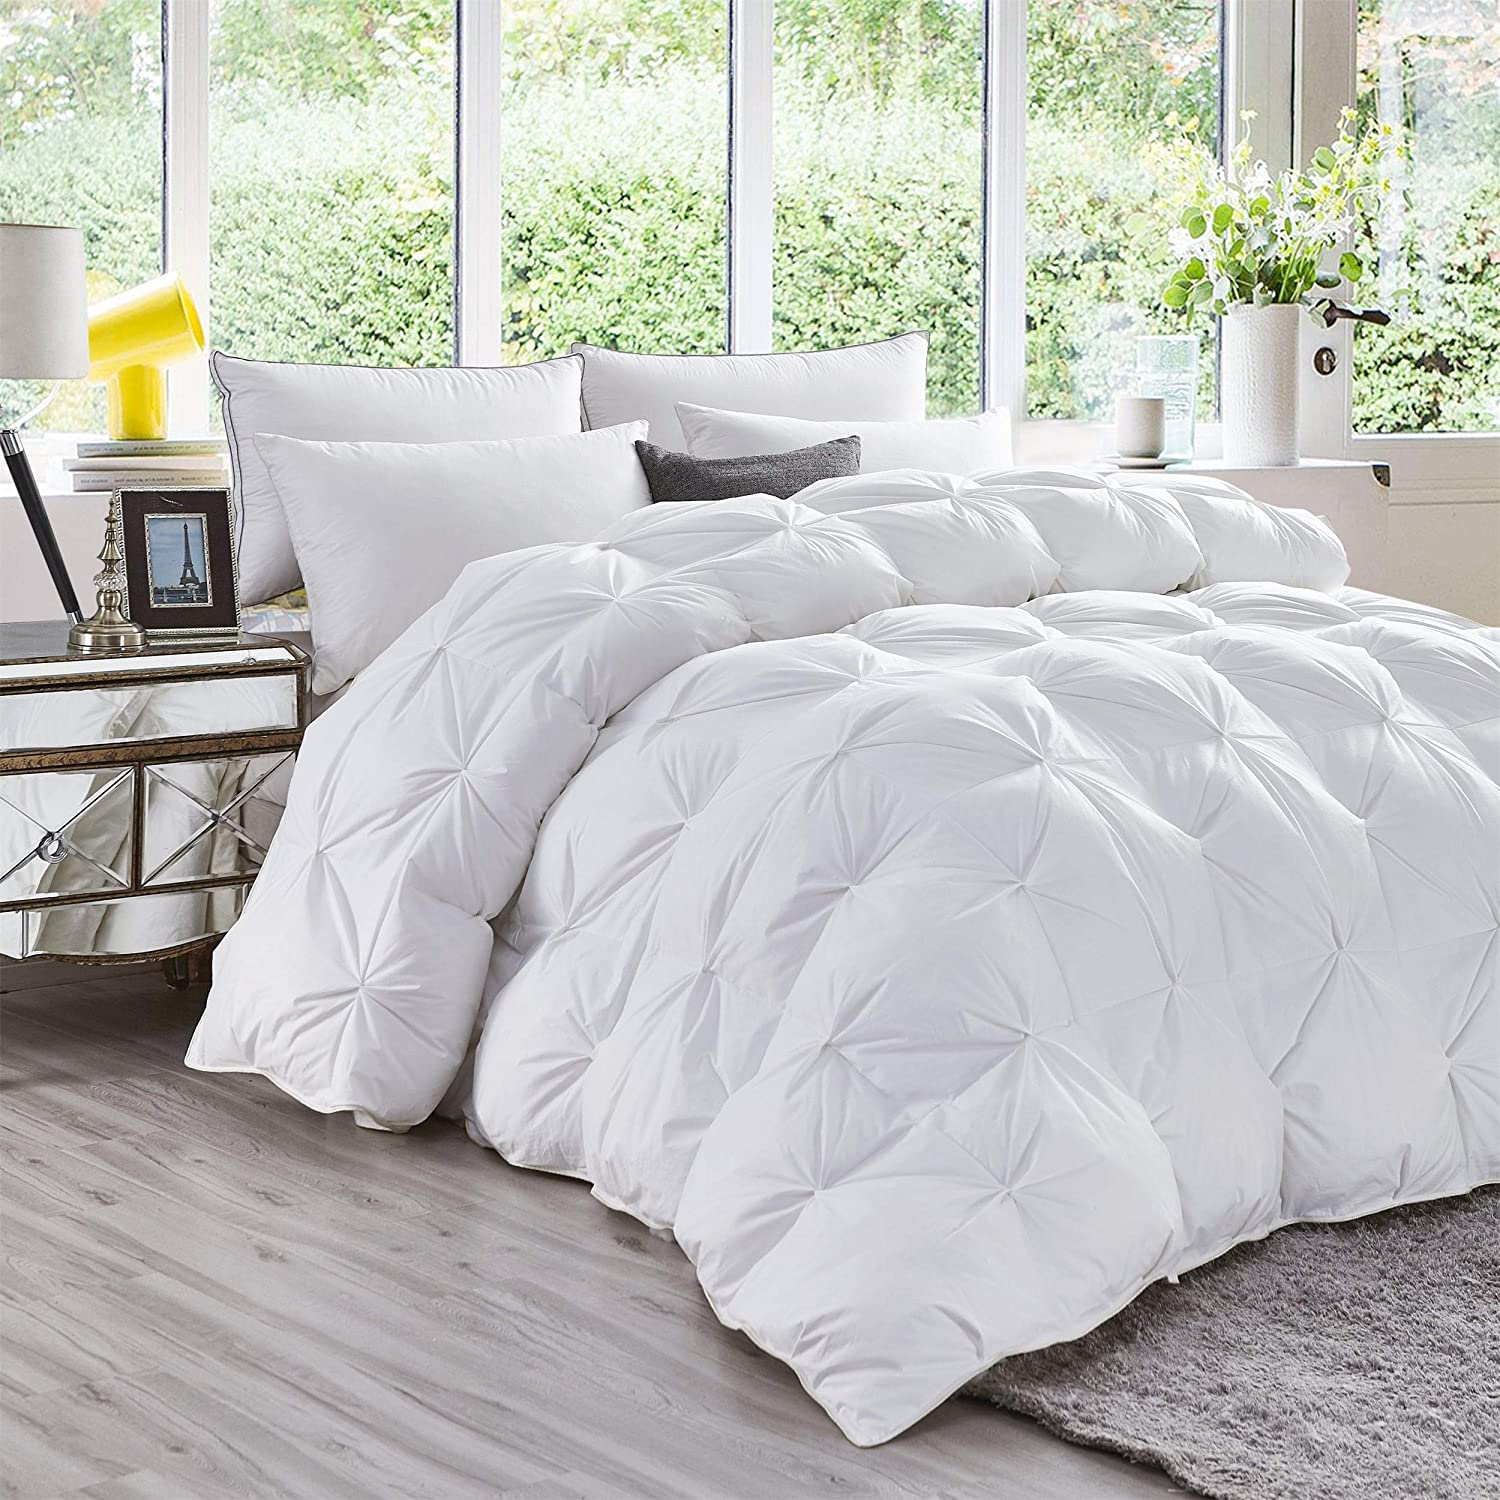 Luxurious All-Season Goose Down Comforter Queen Size Duvet Insert